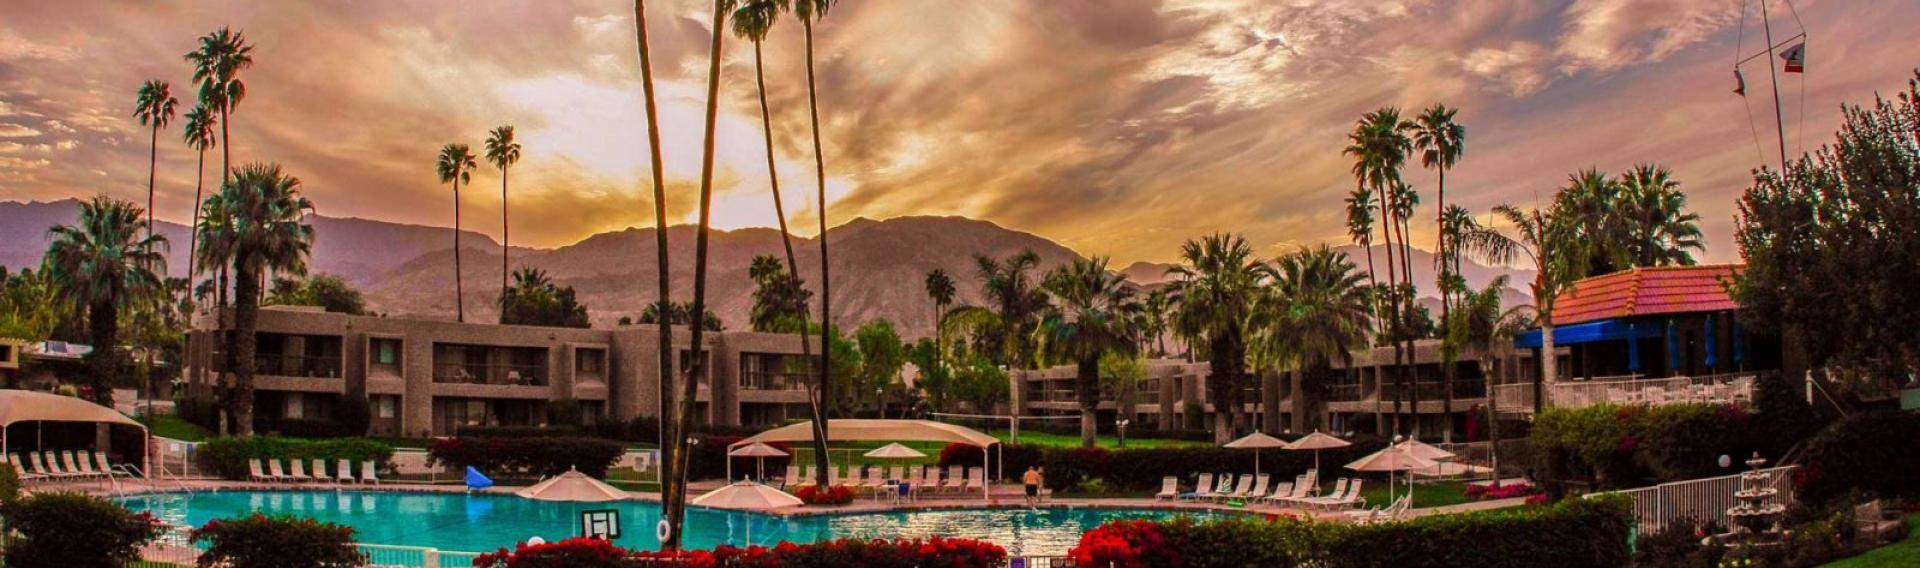 Shadow Mountain Resort in Palm Springs, California for CME, CLE, and CE